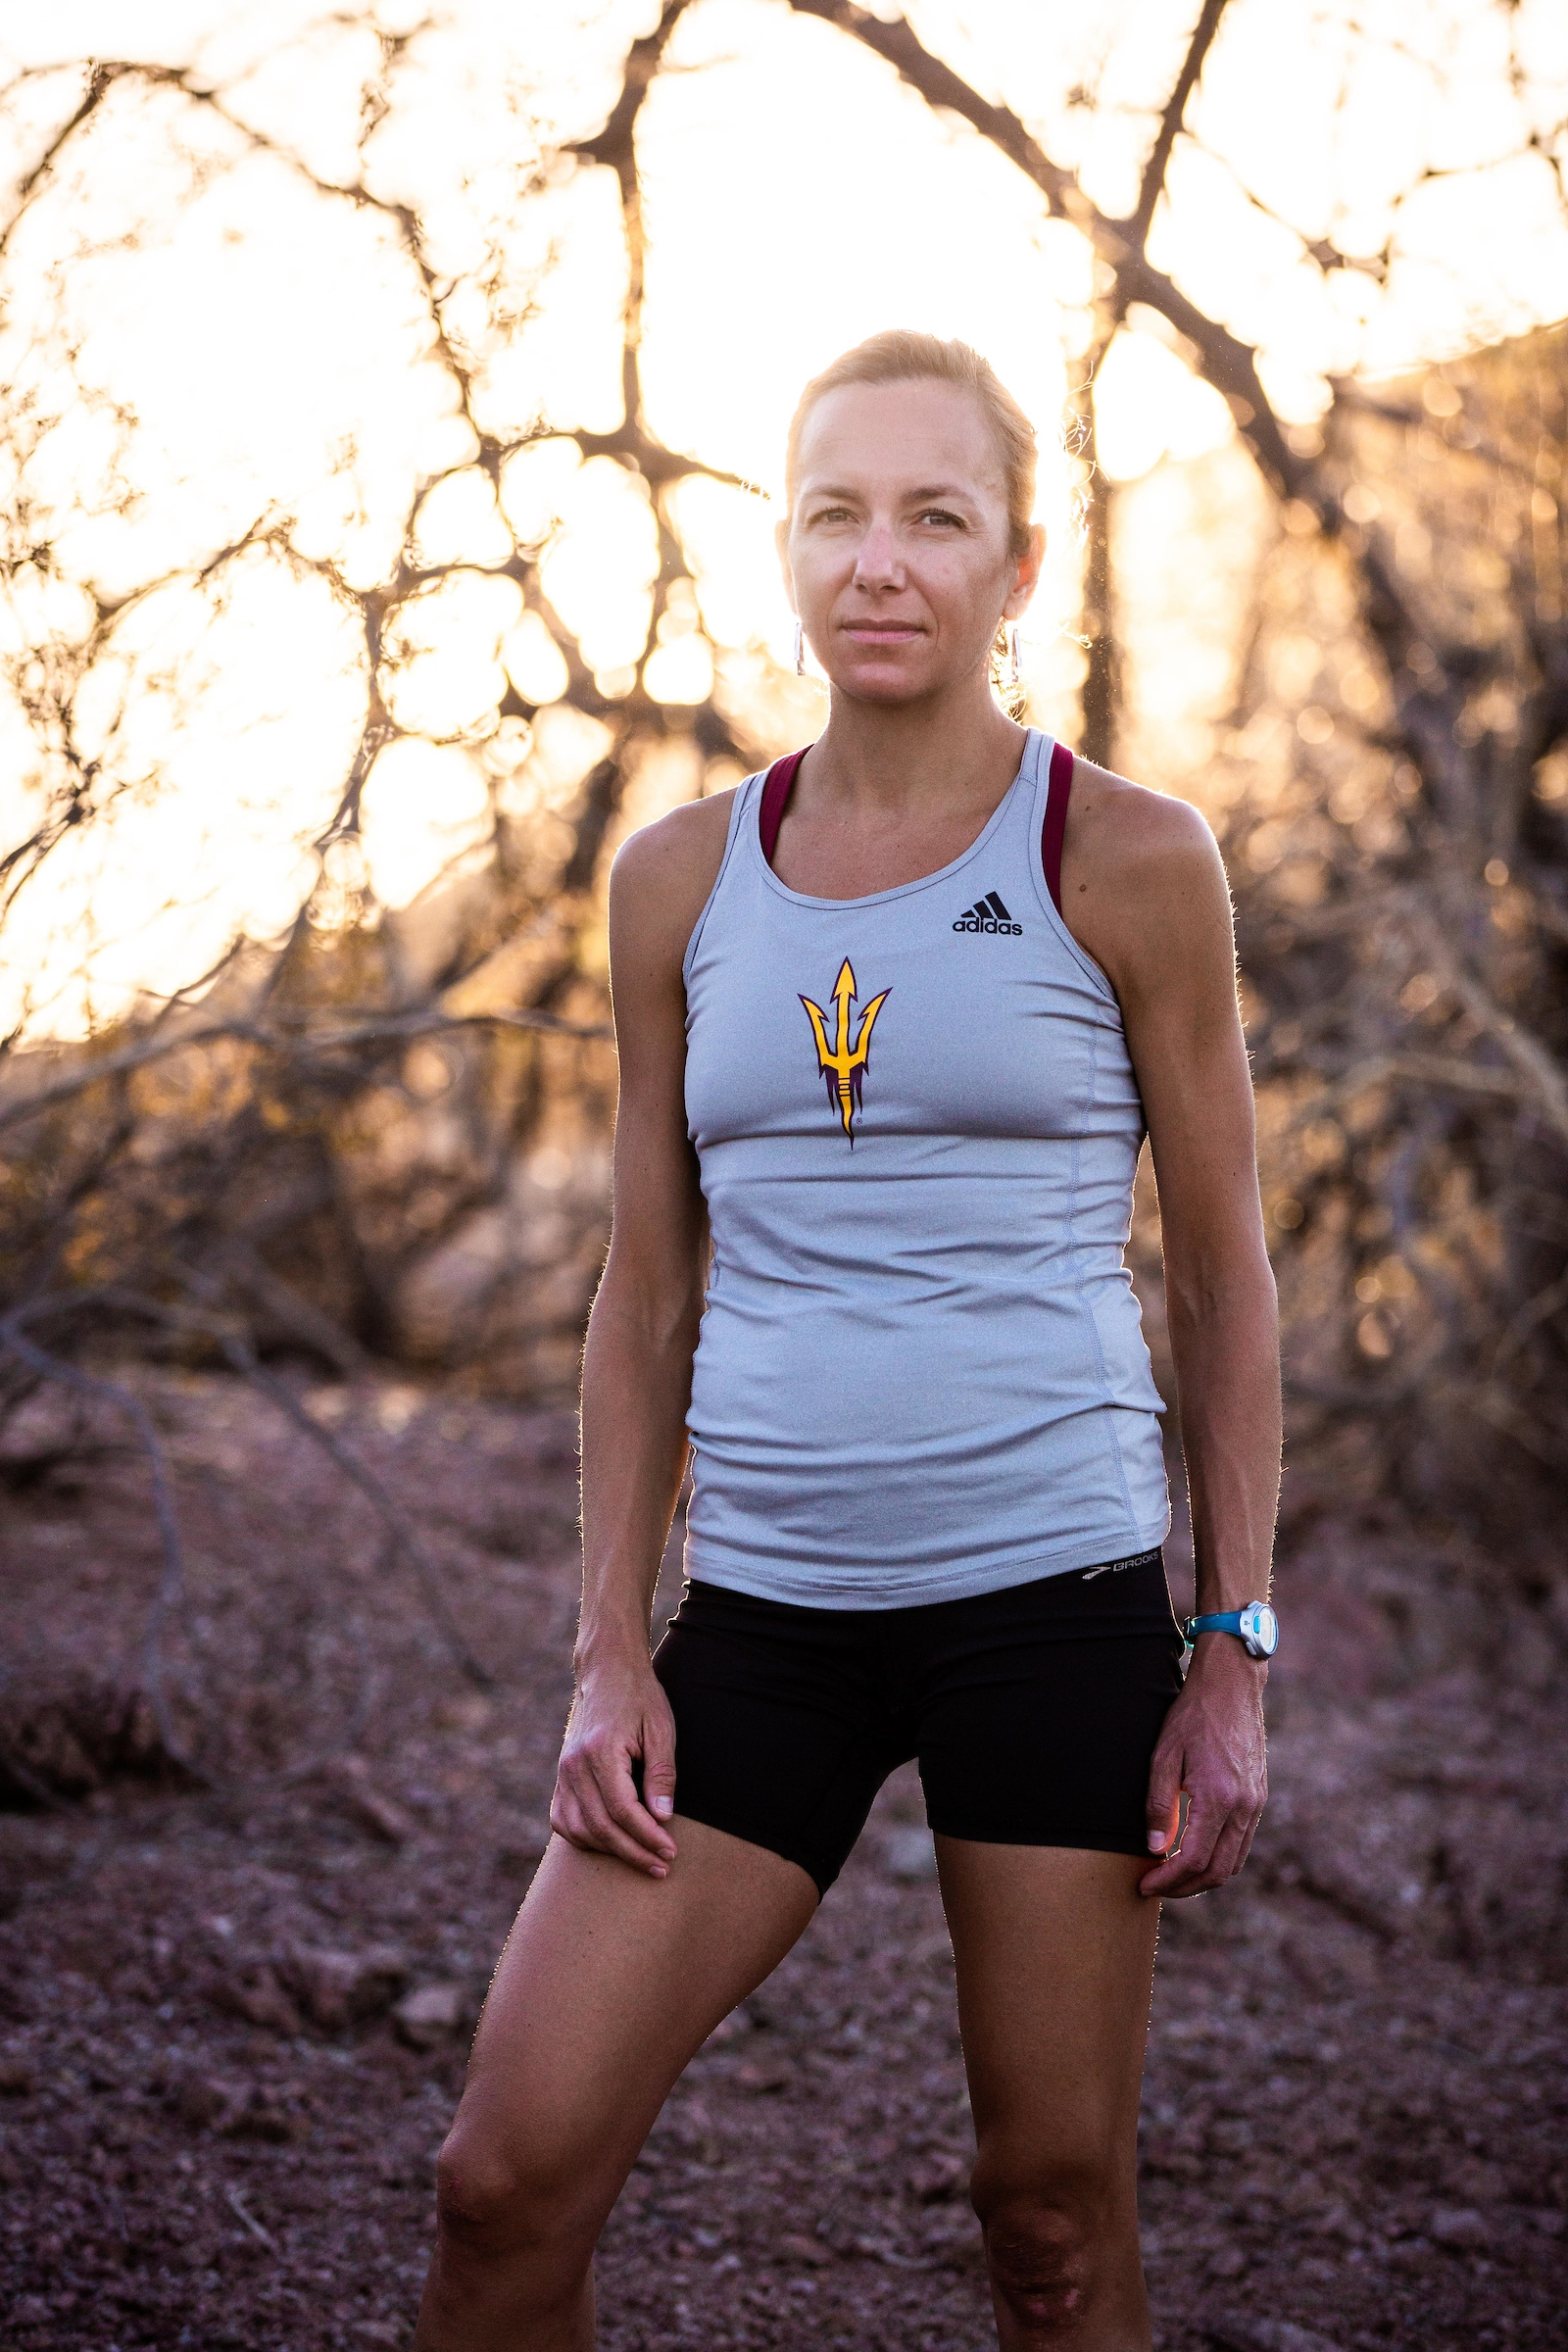 ASU Clinical Assistant Professor and sports historian Victoria Jackson wearing ASU logo running top and shorts looks at the camera against a backdrop of a desert scene